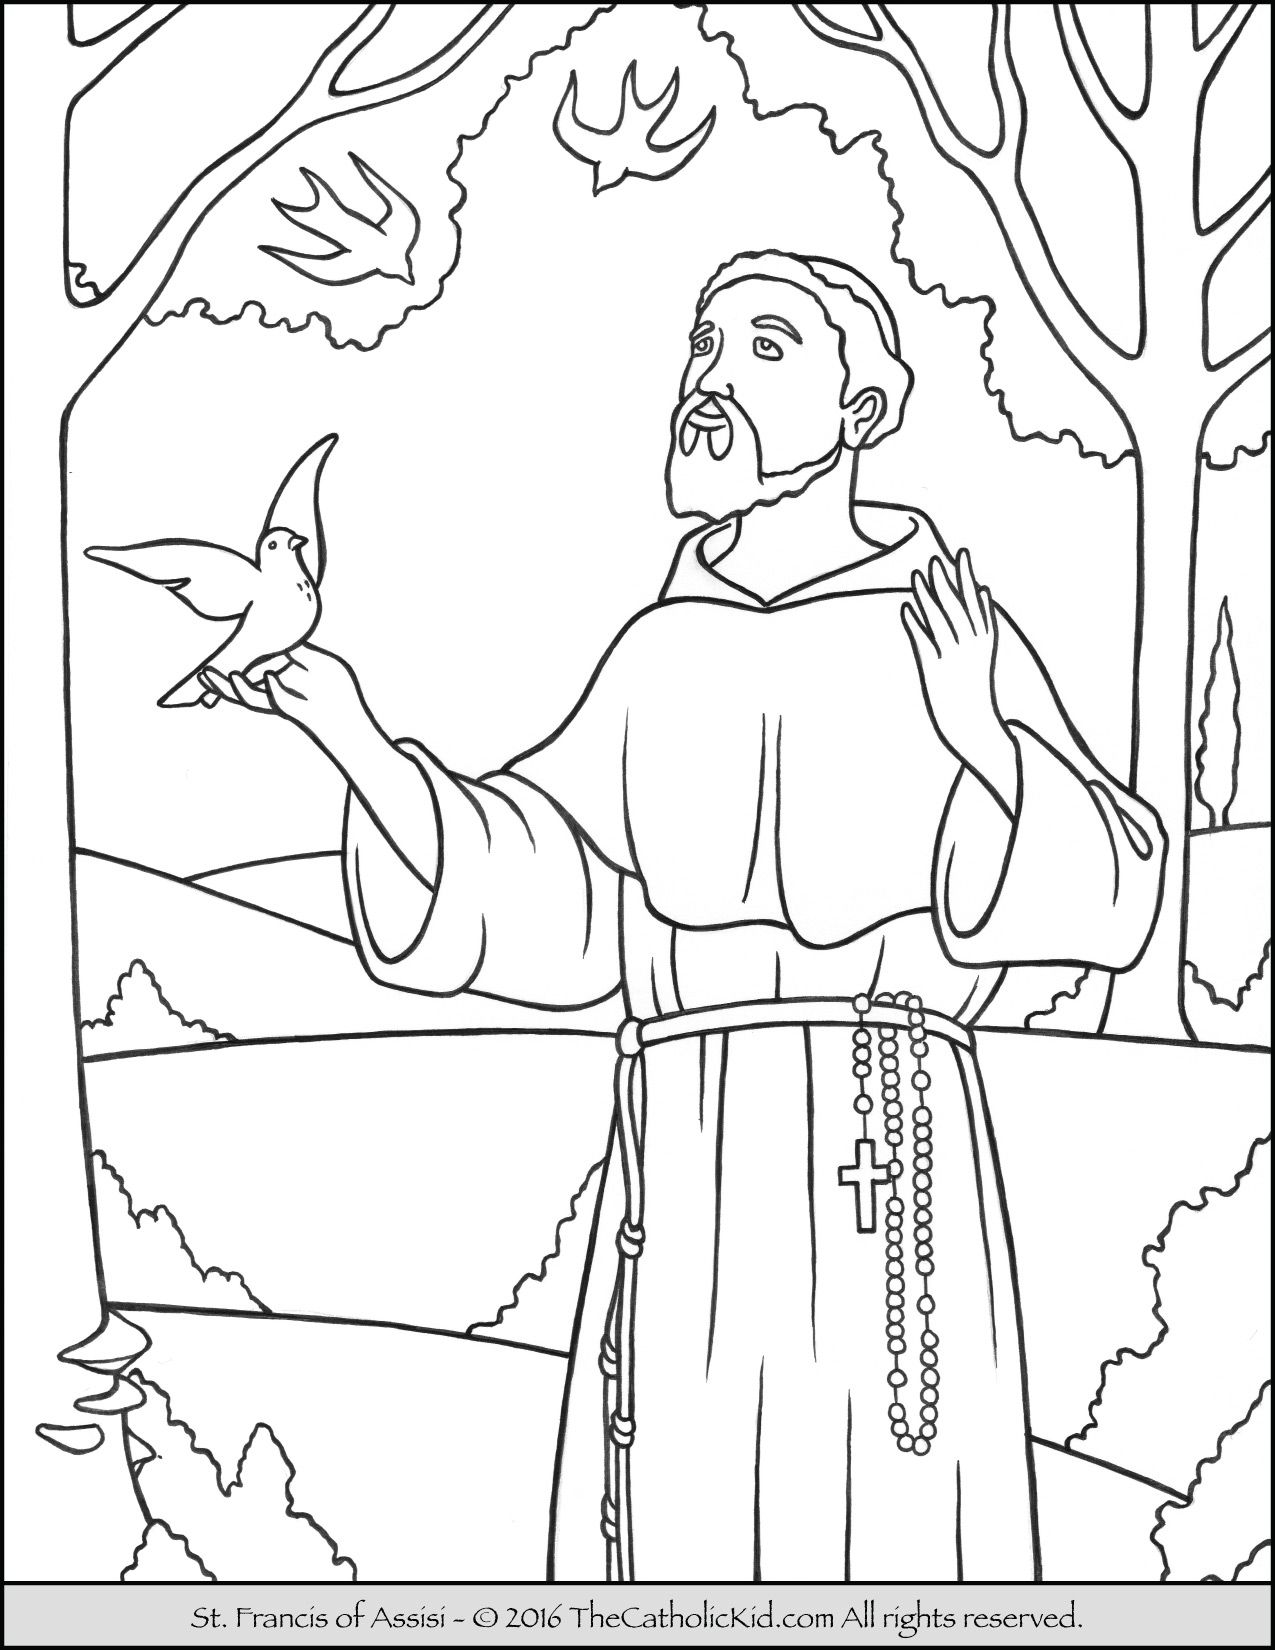 Saint Francis Coloring Page The Catholic Kid Catholic Coloring Pages And Games For Children Saint Coloring Catholic Coloring Bible Coloring Pages